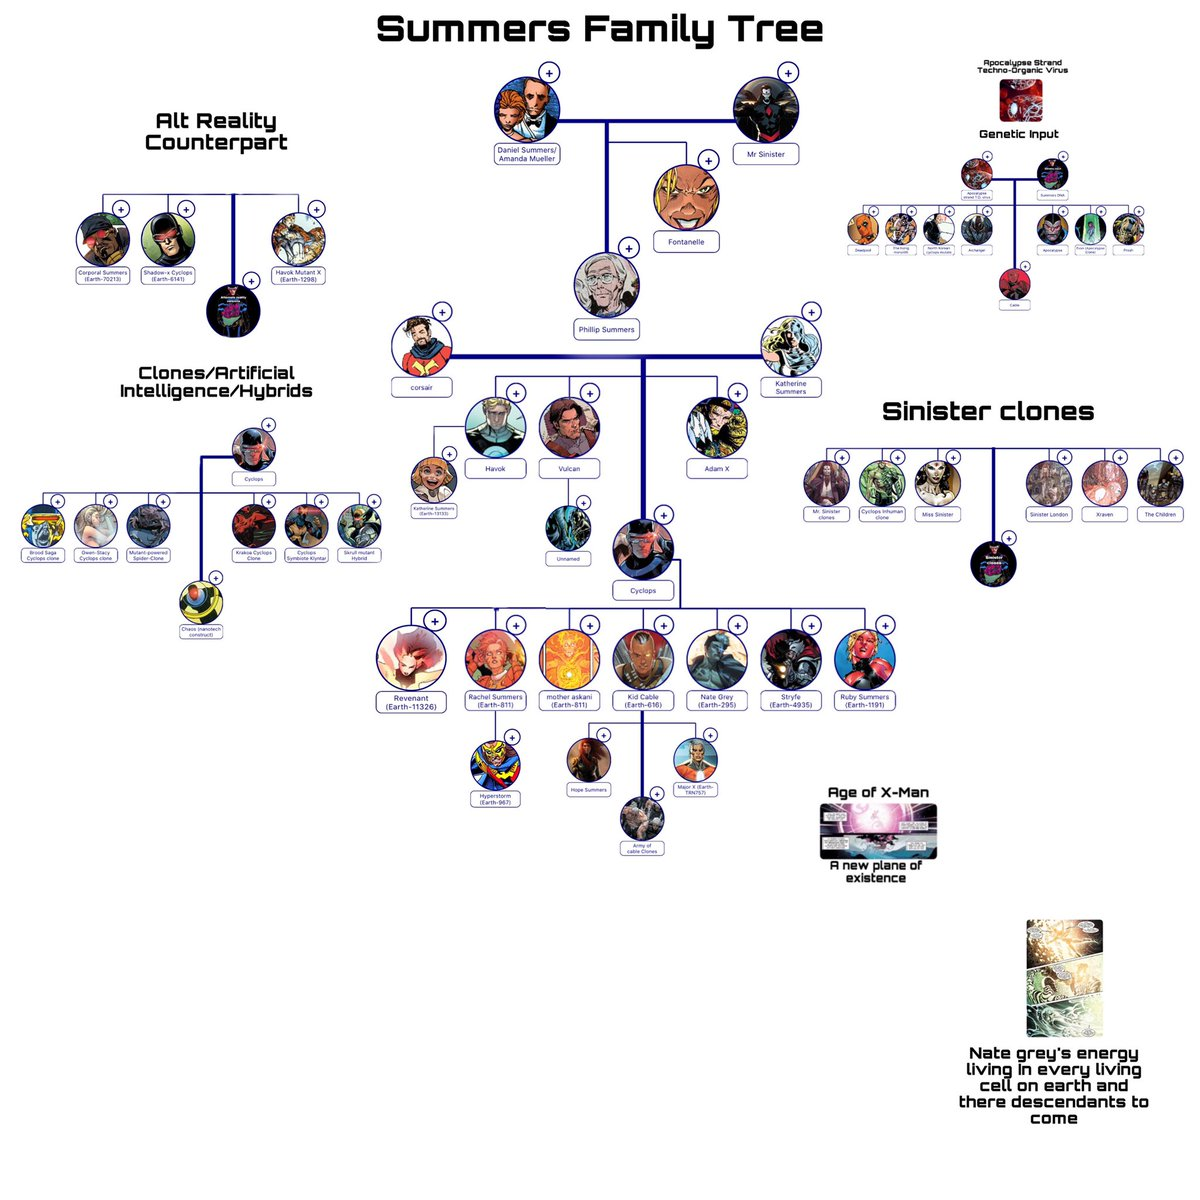 Summers Family Tree new Version   #Xtwitter #xmen #XSpoilers  #NewMutants #Marvel #marvelcomics #Marvel616 #ReignOfX #MutantFam #Gambit #Rogue #Xavier #xreads #90sxmen #comicbooks #gaygeek #mutantandproud.